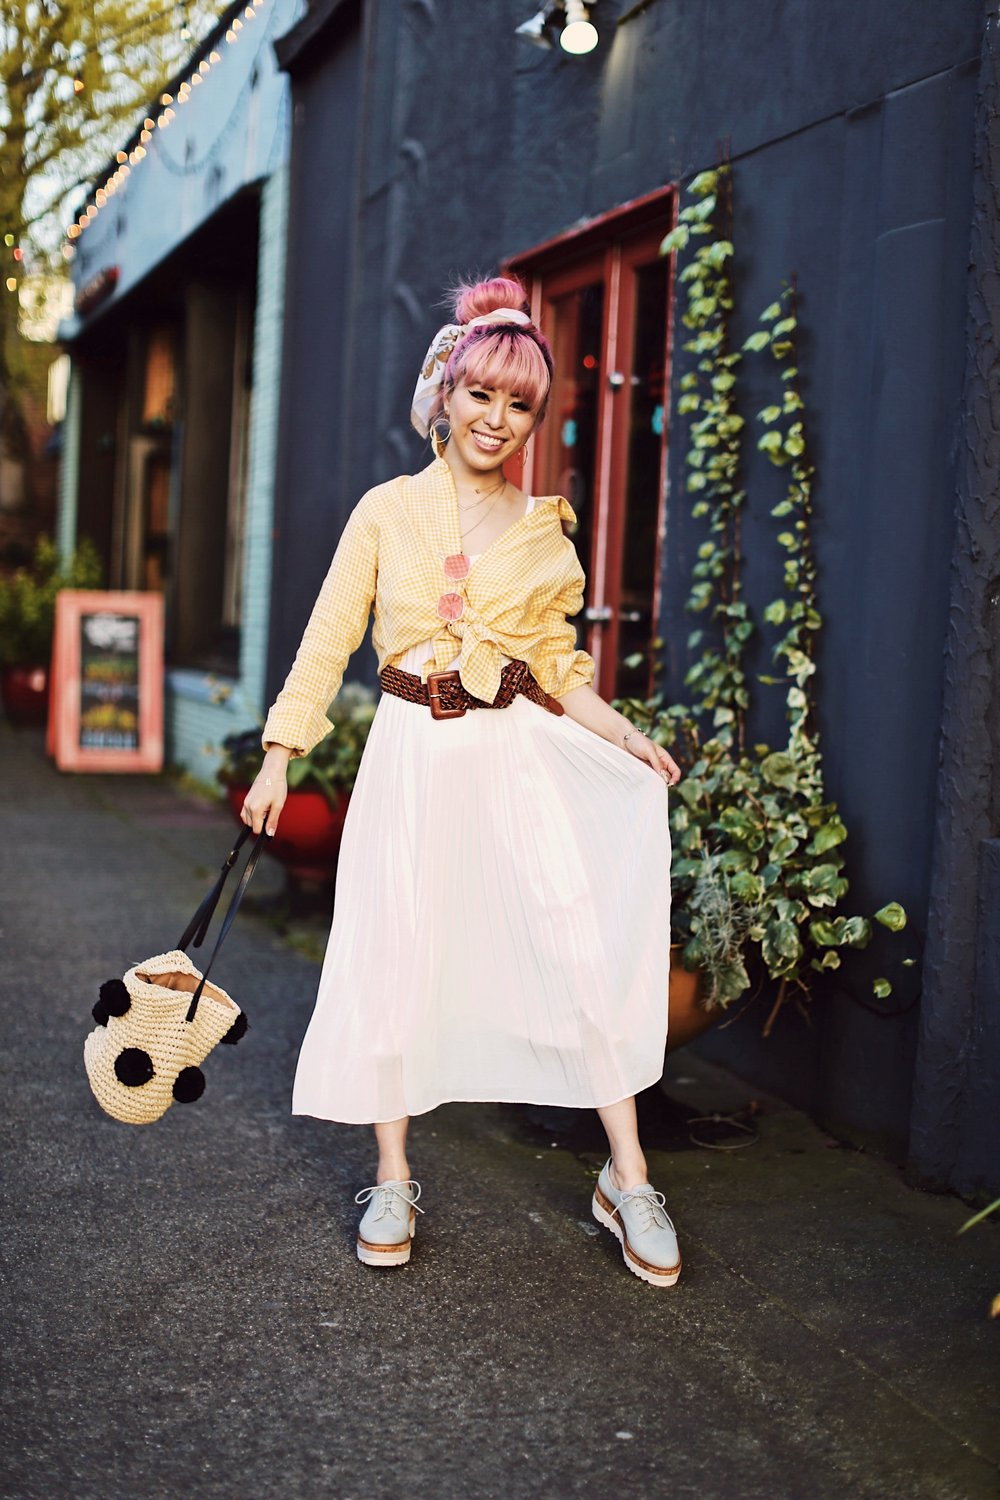 Uniqlo yellow Linen gingham shirt-Uniqlo White pleated chiffon midi skirt-Uniqlo Airism brat-pink tinted sunglasses ZERO UV-She in Pom pom Straw bucket bag-Vintage scarf bun hair style-Steve Madden Belt-Jane and the shoe denim oxford platforms-Aika's Love Closet-seattle fashion style blogger-Japanese-pink hair-smiling-spring fashion 8